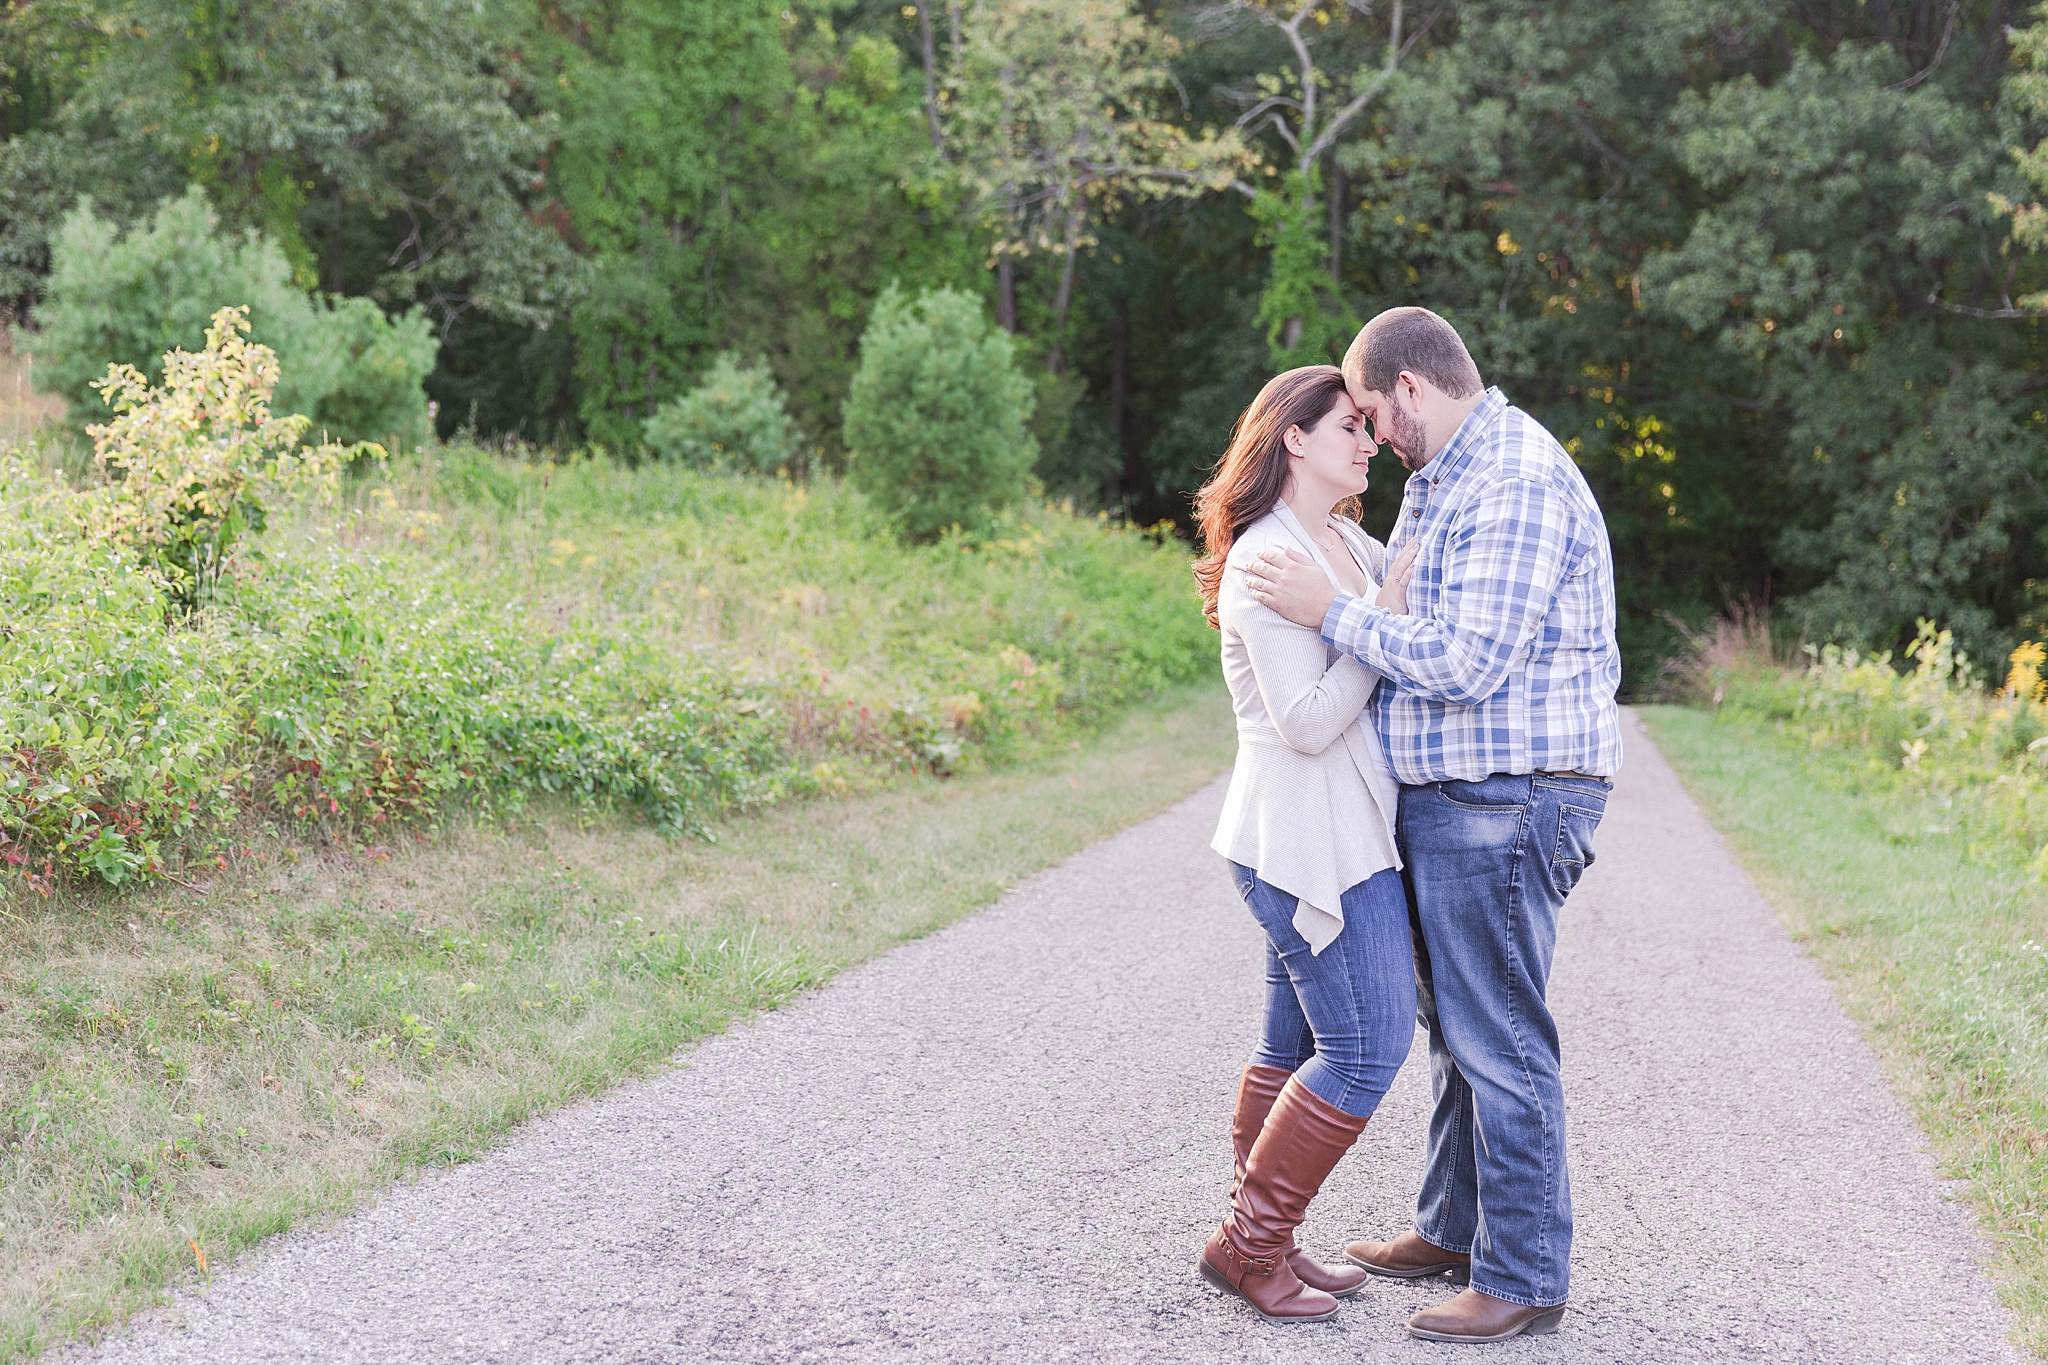 classic-vineyard-engagement-photography-in-lansing-mi-by-courtney-carolyn-photography_0014.jpg